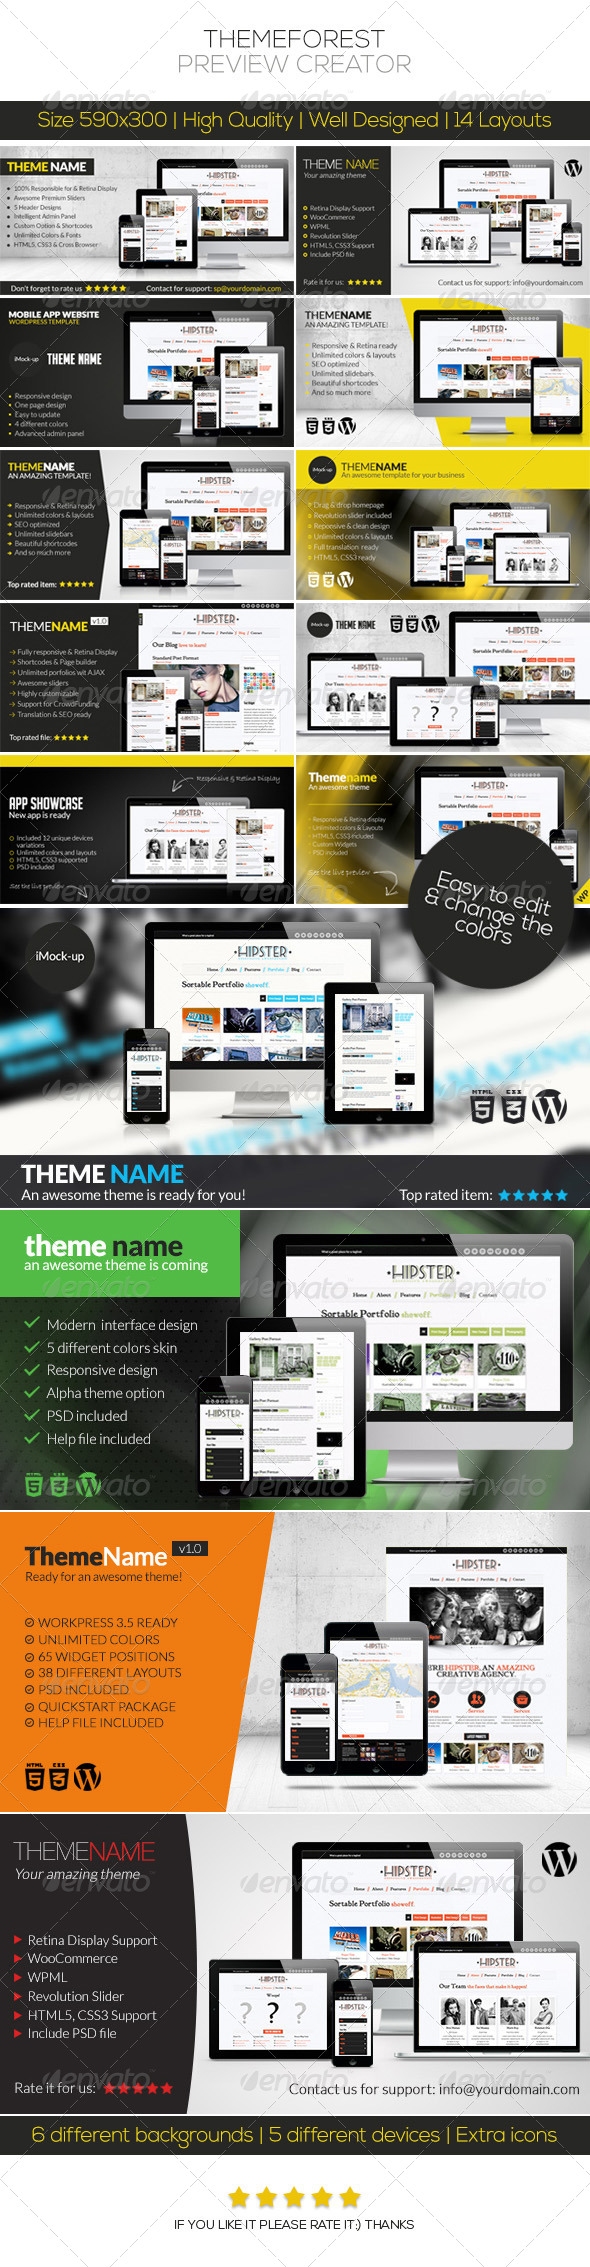 ThemeForest Preview Creator - Multiple Displays